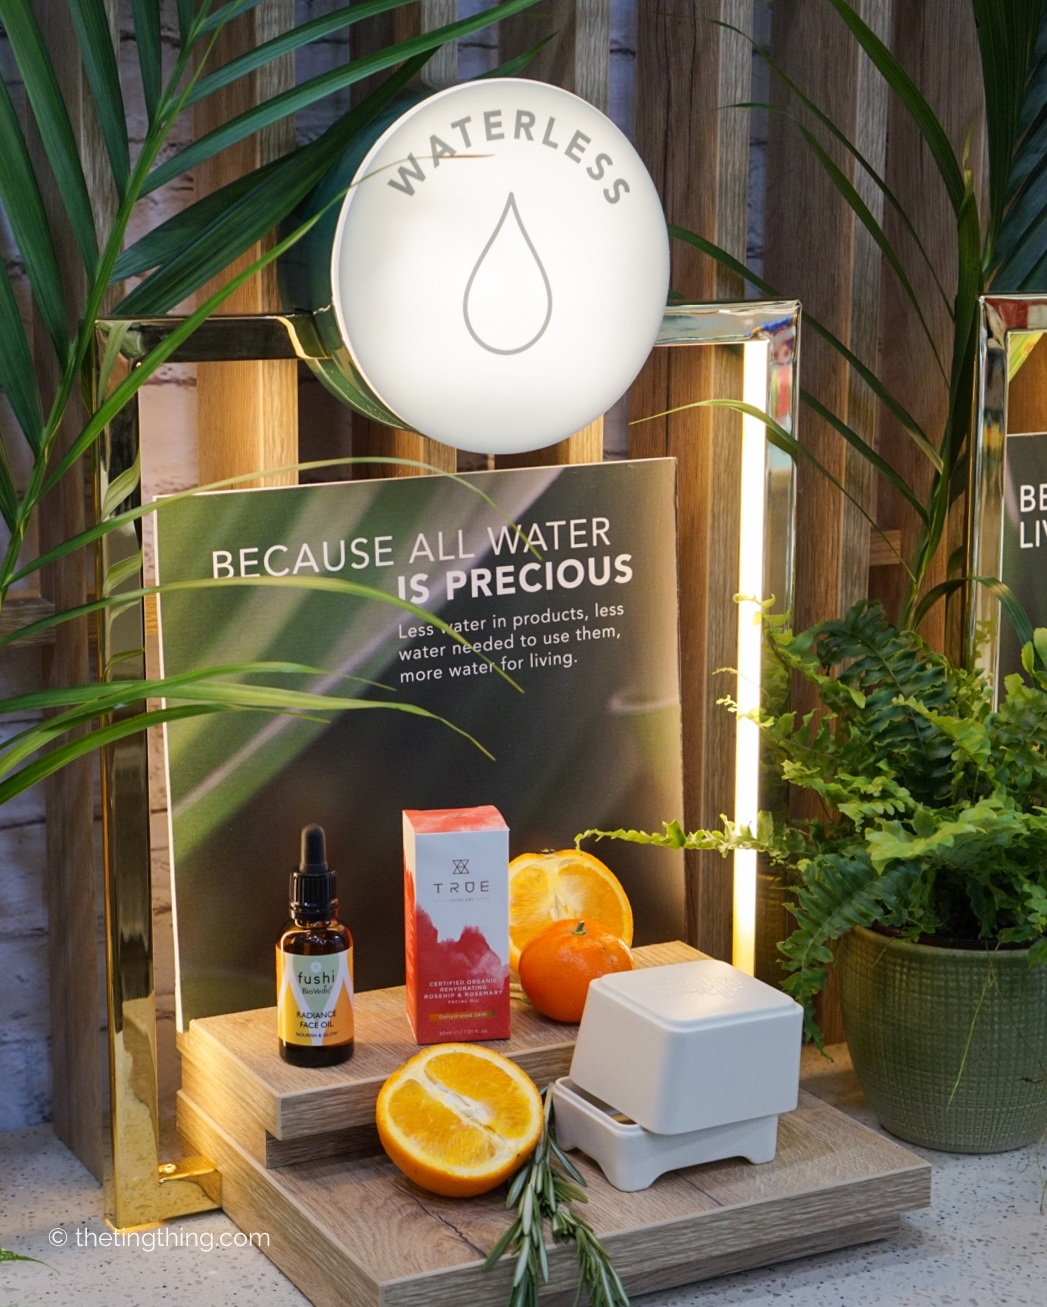 Holland and Barrett clean and conscious beauty commitment to waterless products display